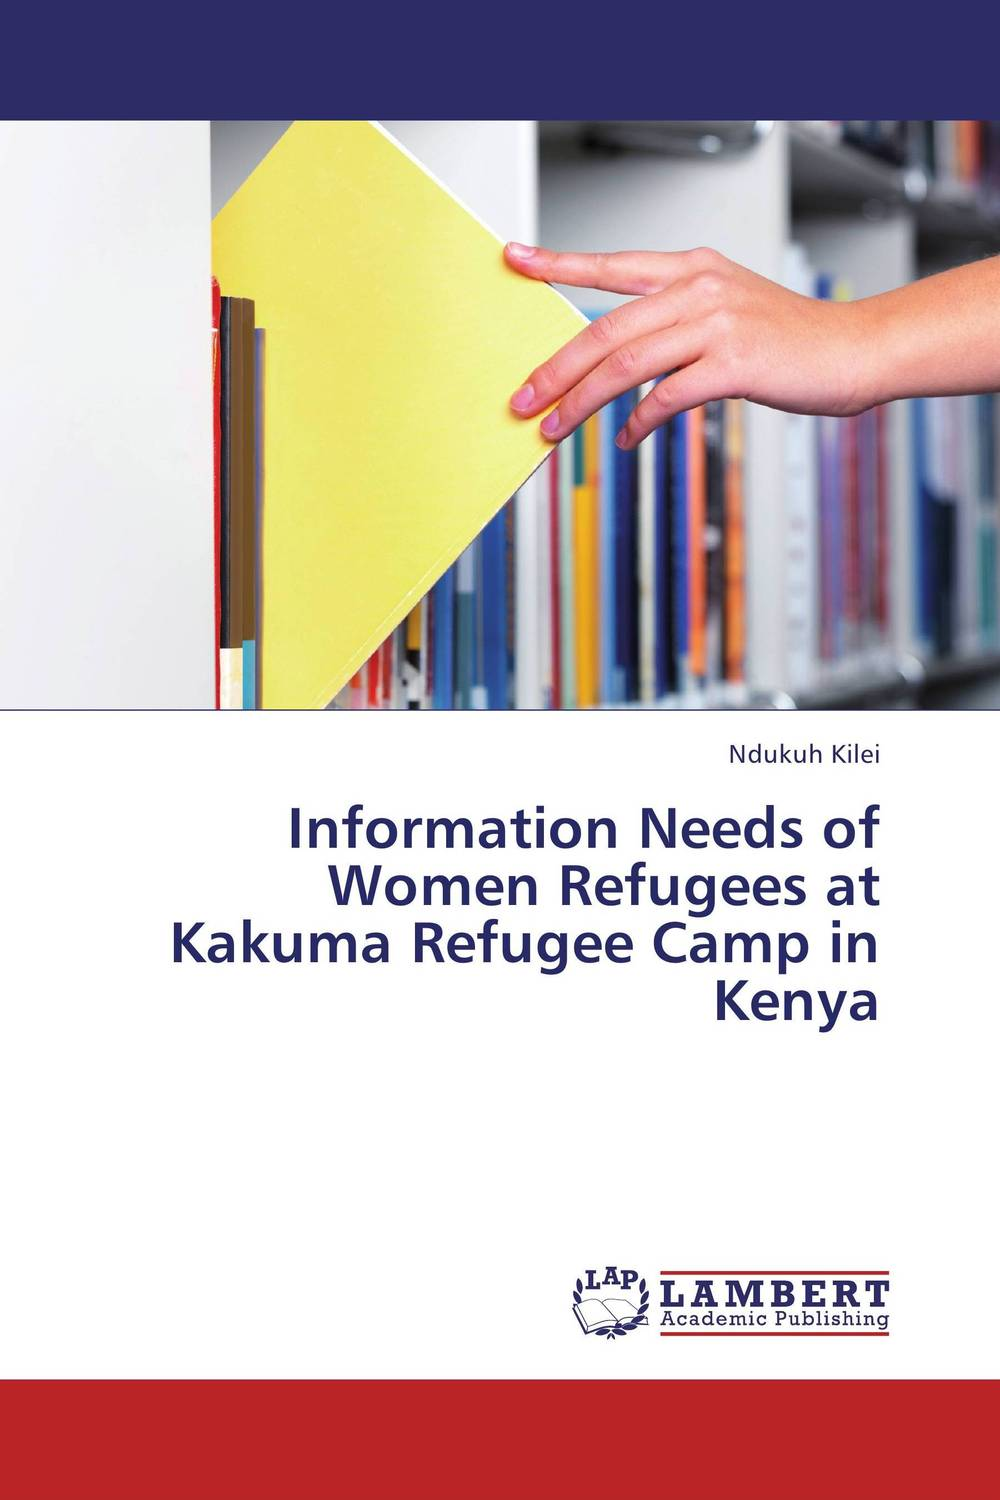 Information Needs of Women Refugees at Kakuma Refugee Camp in Kenya voluntary associations in tsarist russia – science patriotism and civil society